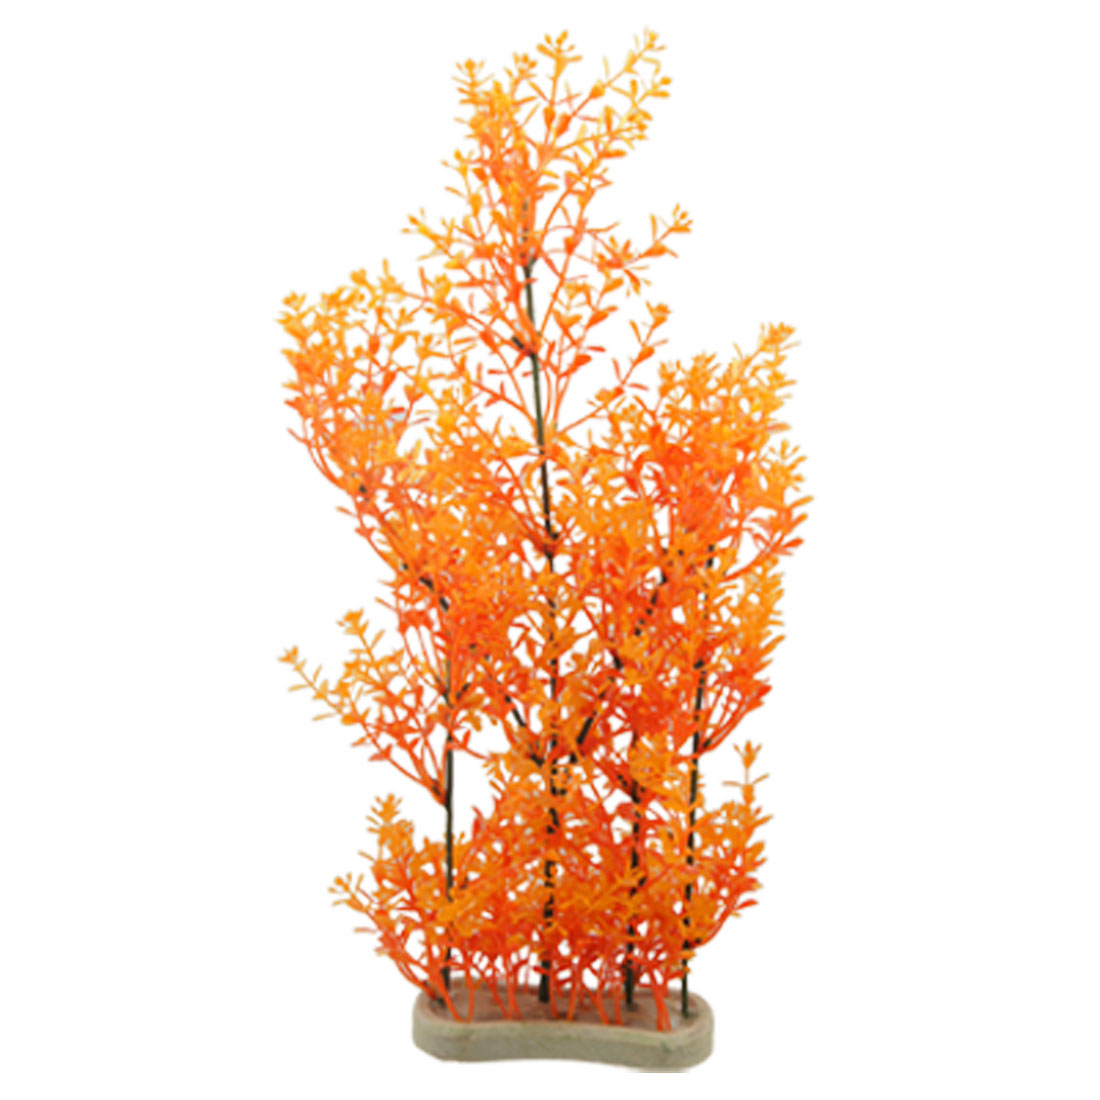 43cm Height Orange Plants Aquarium Aquascaping Plants